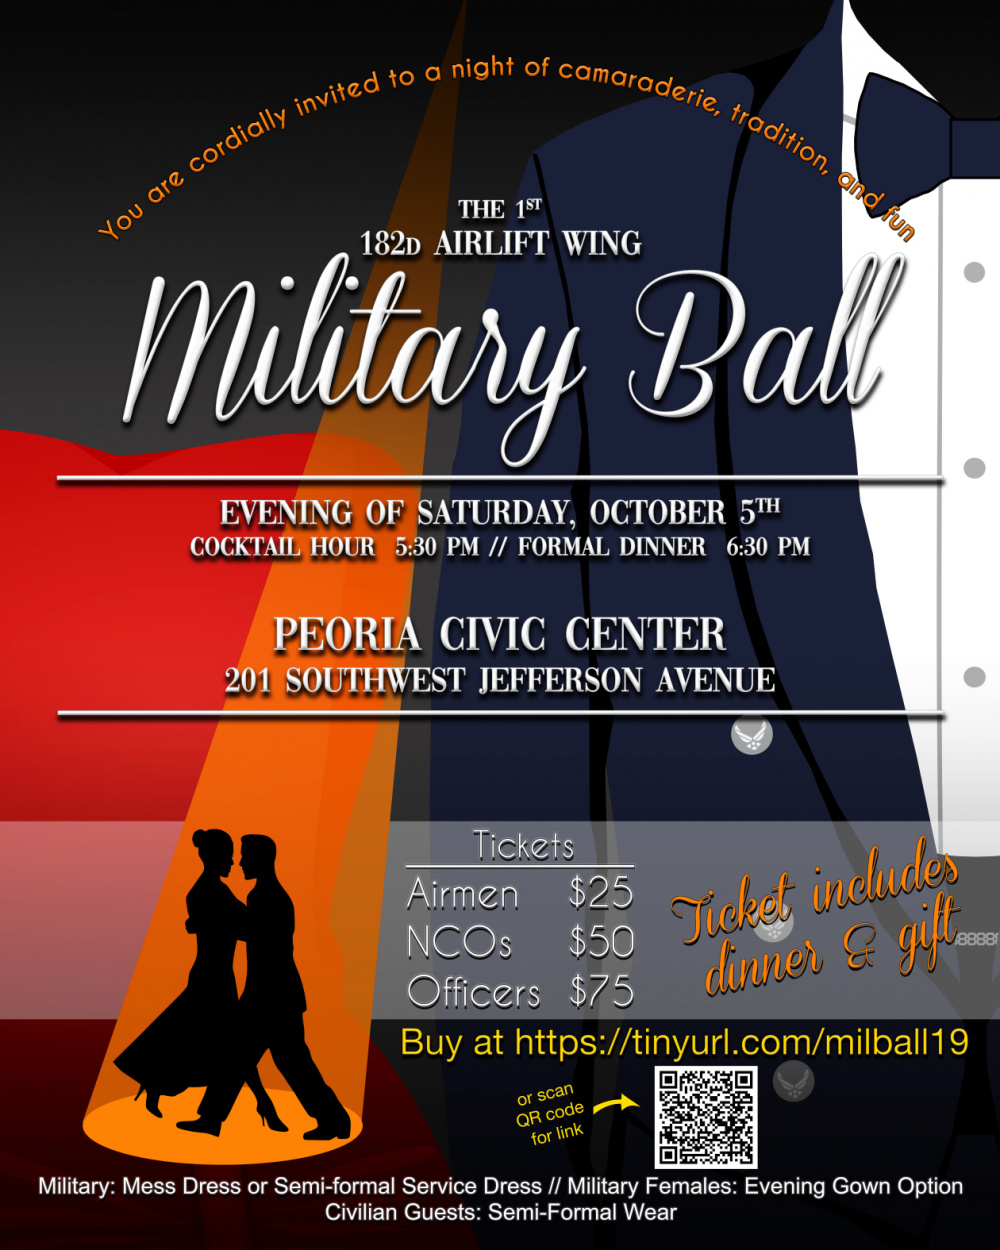 182nd Airlift Wing Military Ball 2019 promotional poster